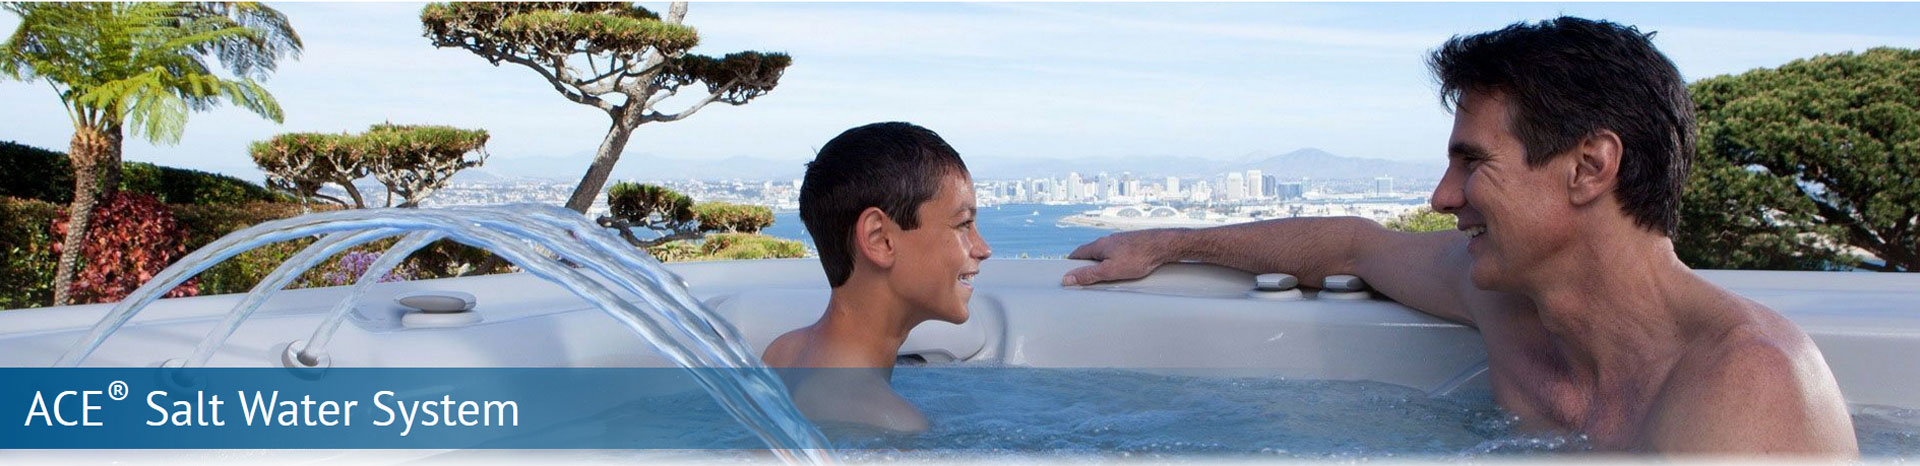 Benefits of Soaking in a Salt Water Spa – Salt Water Hot Tubs Des Moines